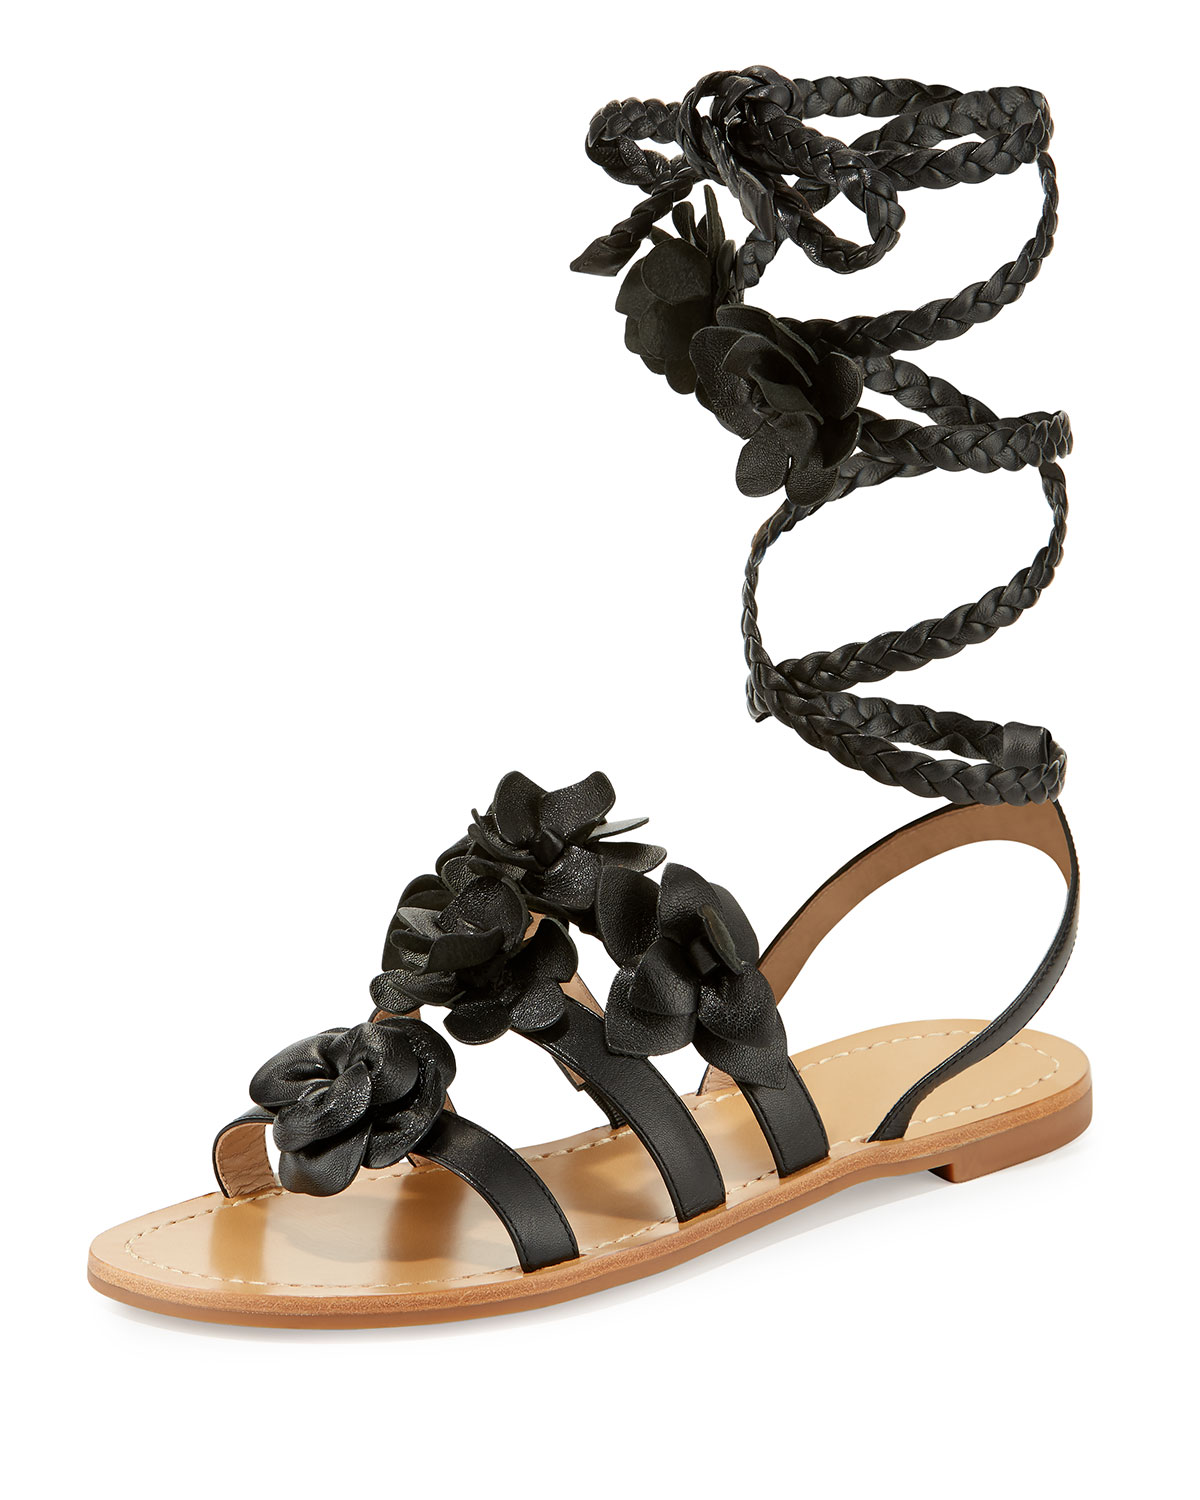 49143be2be6 Tory Burch Blossom Leather Gladiator Sandal